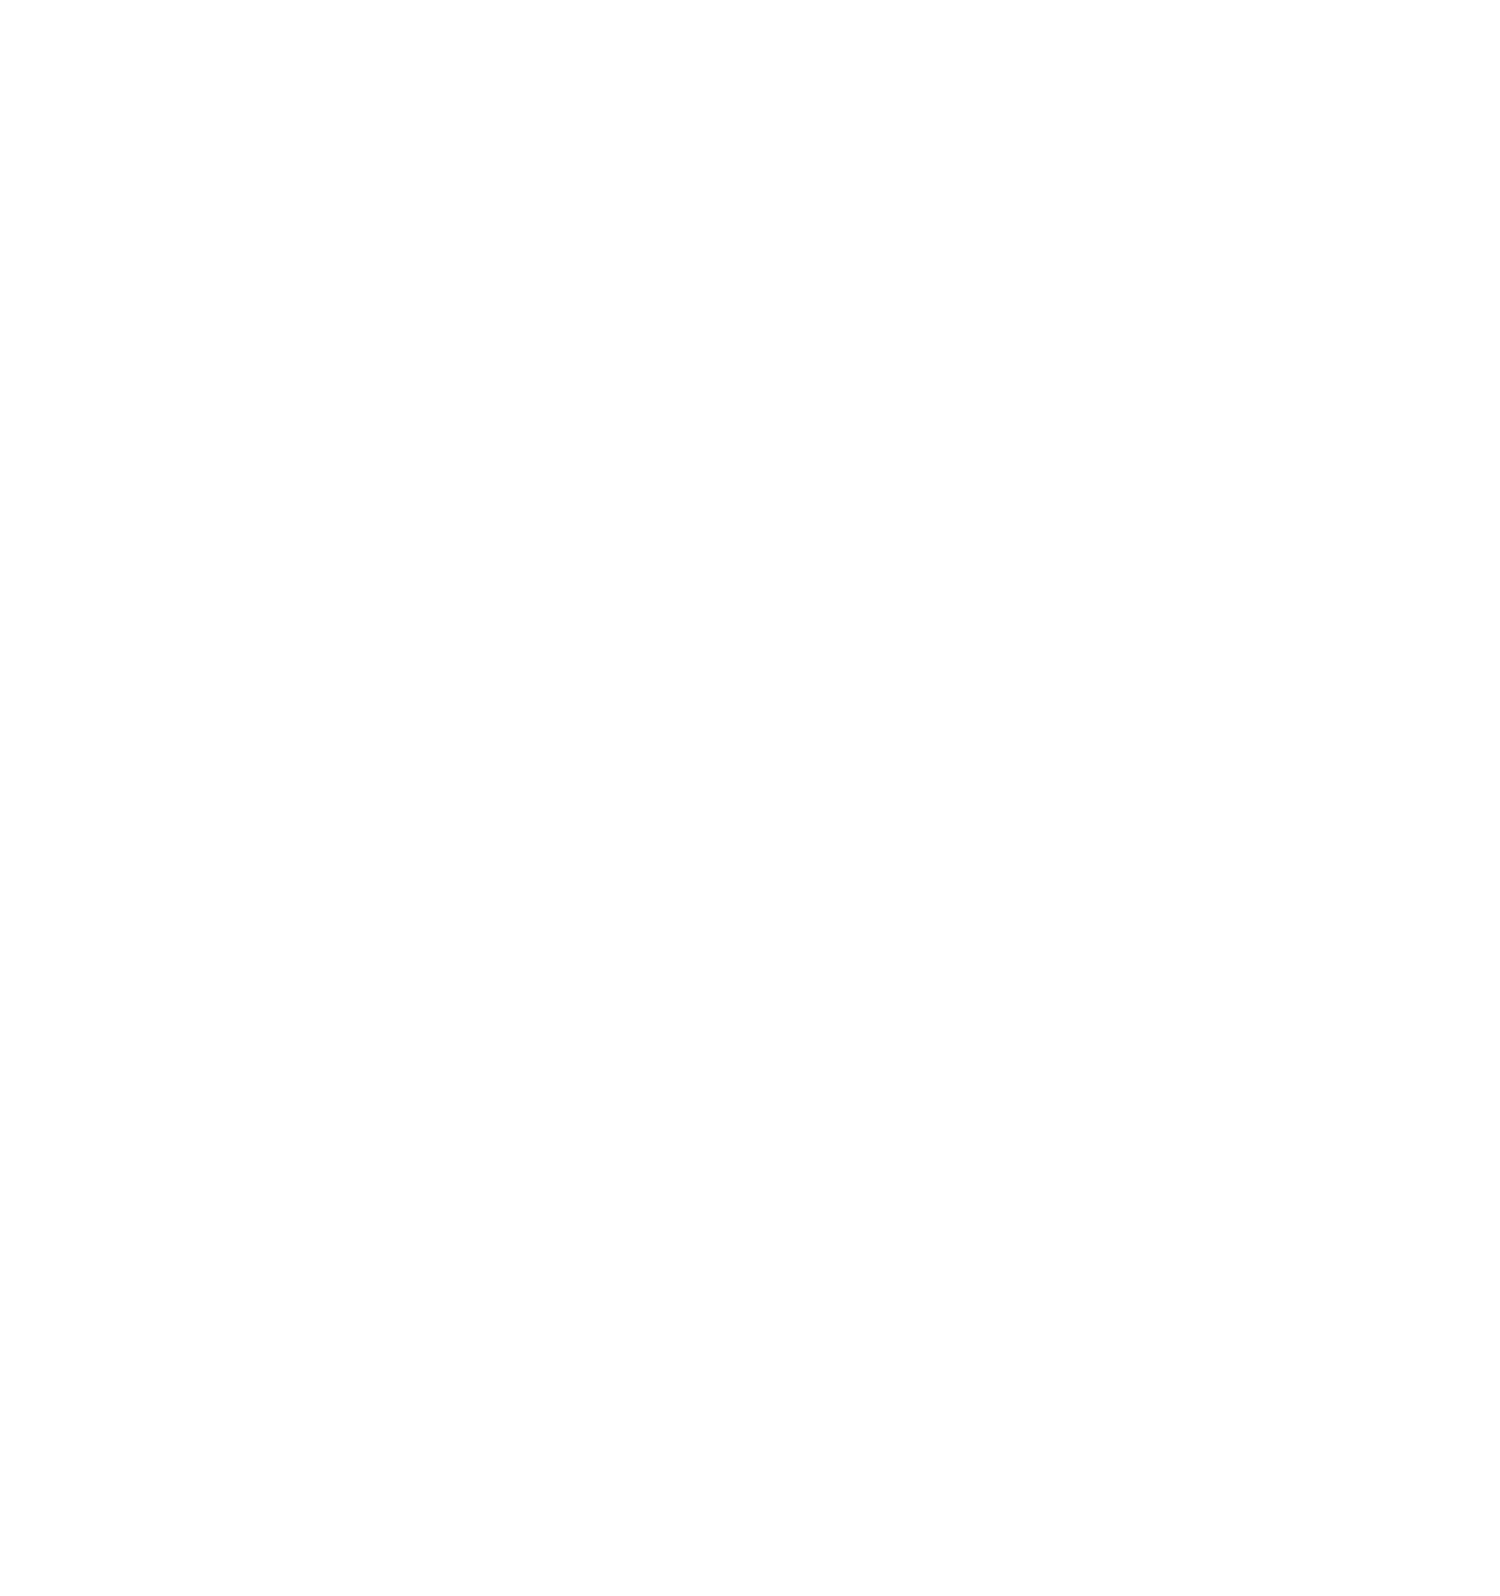 United Marriage Services